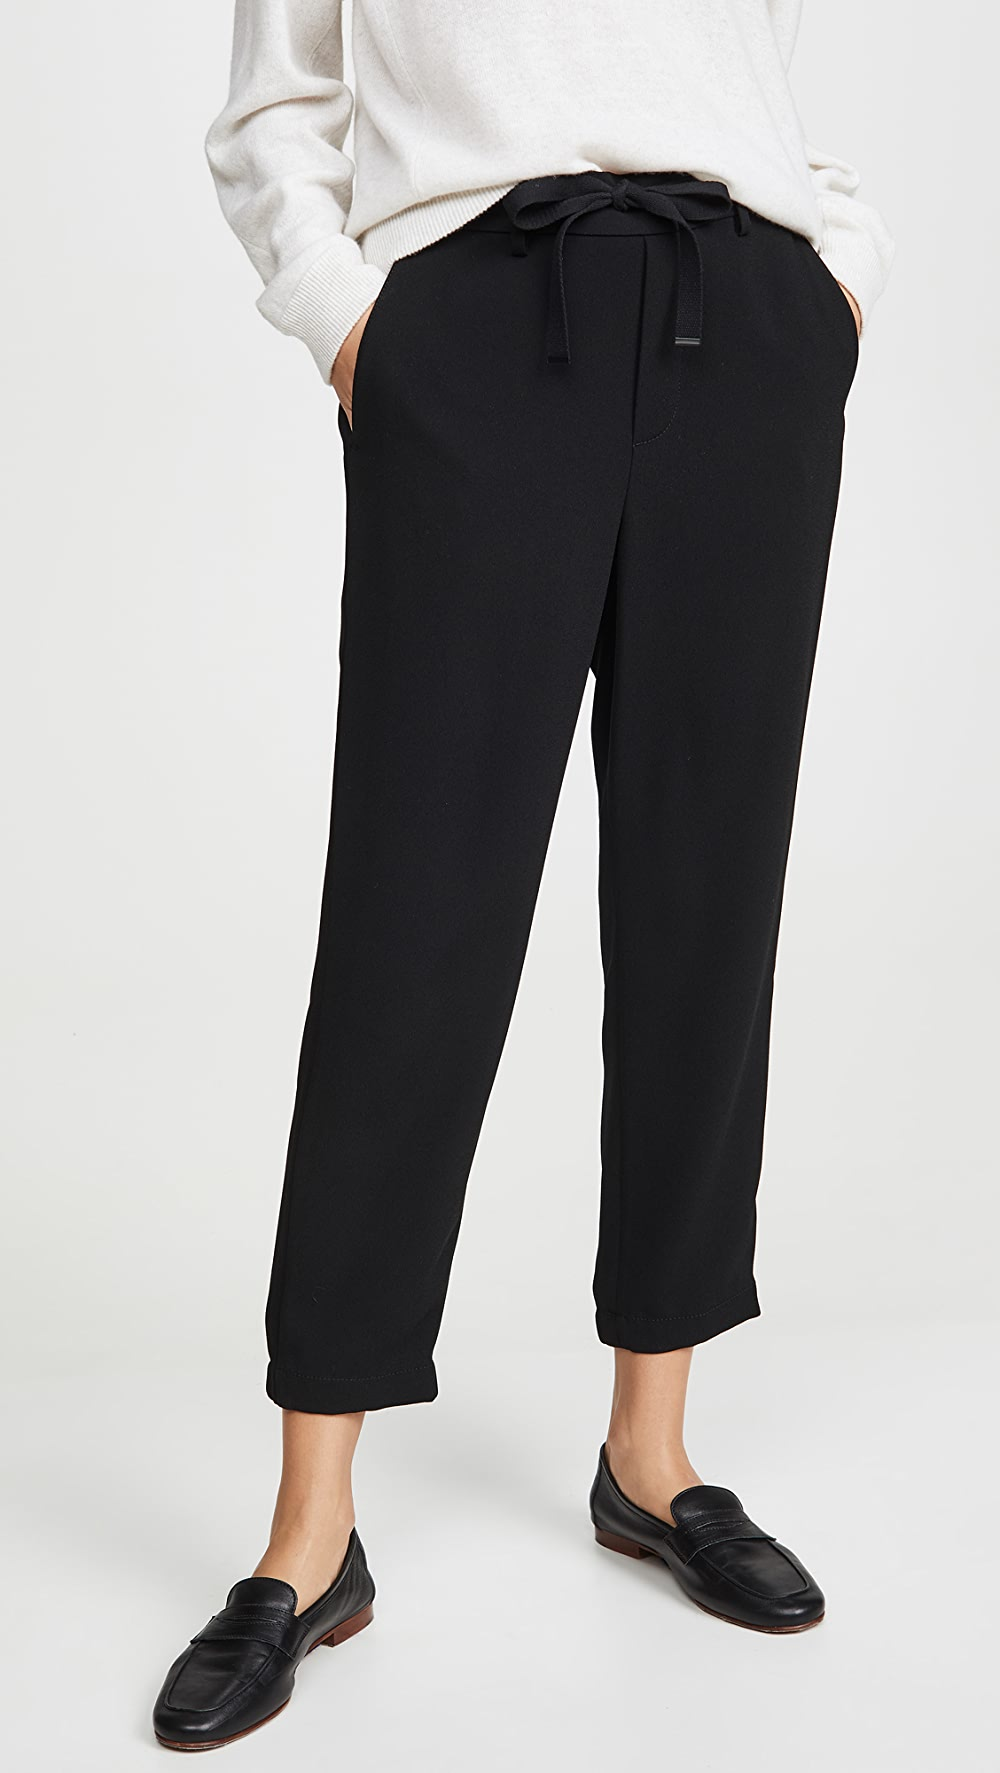 Confident Vince - Easy Pull On Pants High Quality